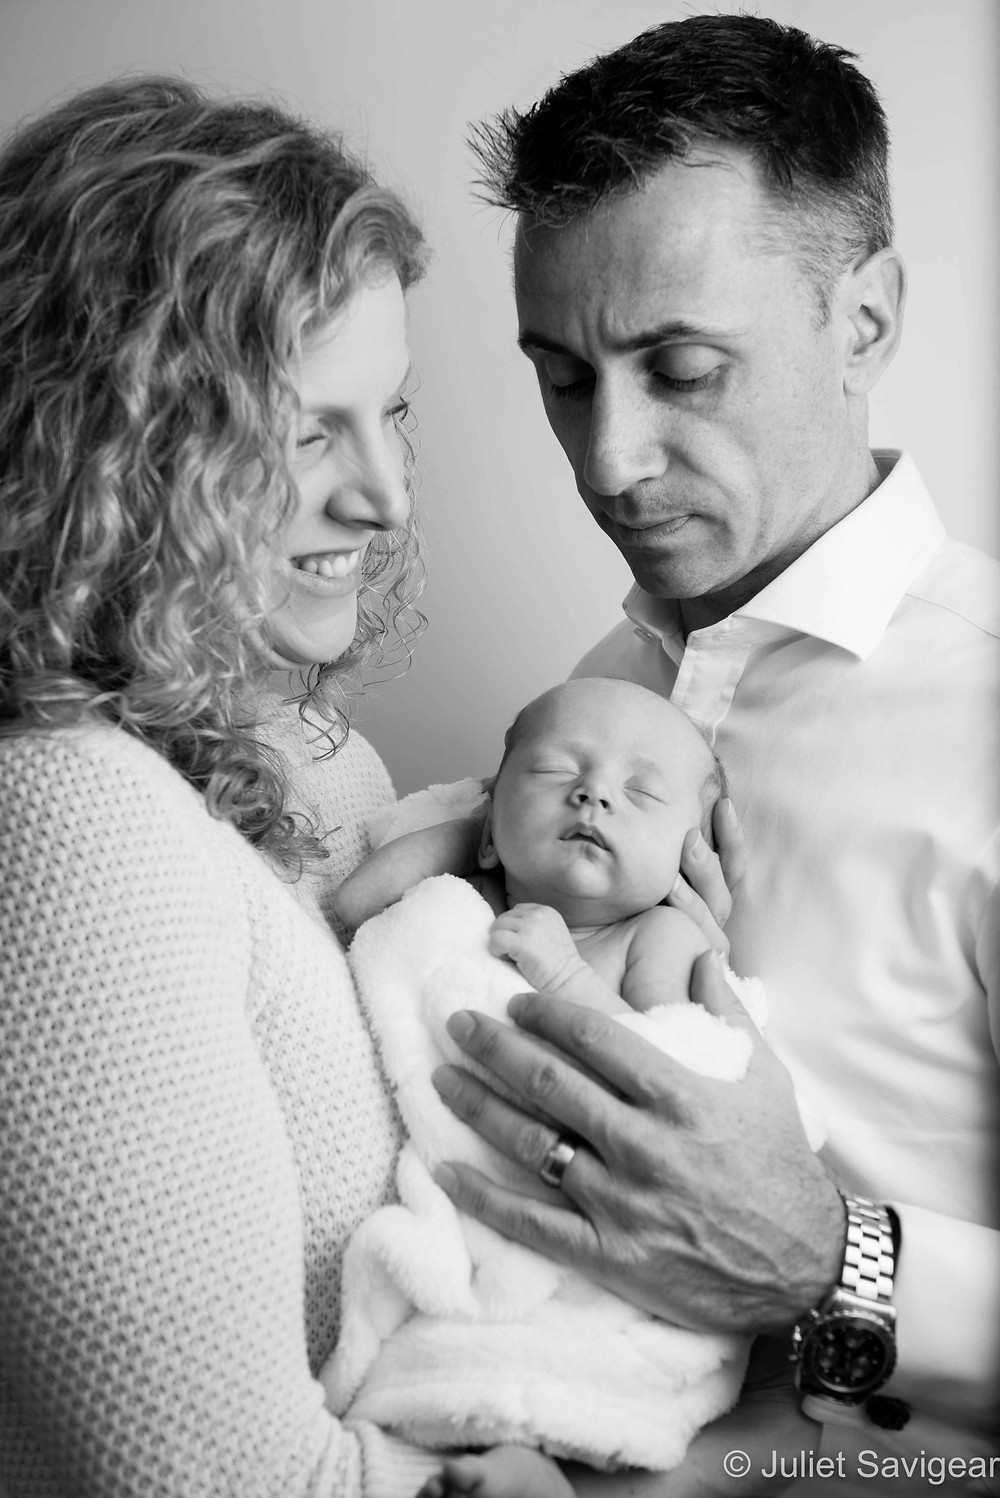 Our New Baby - Newborn Baby & Family Photography, Clapham